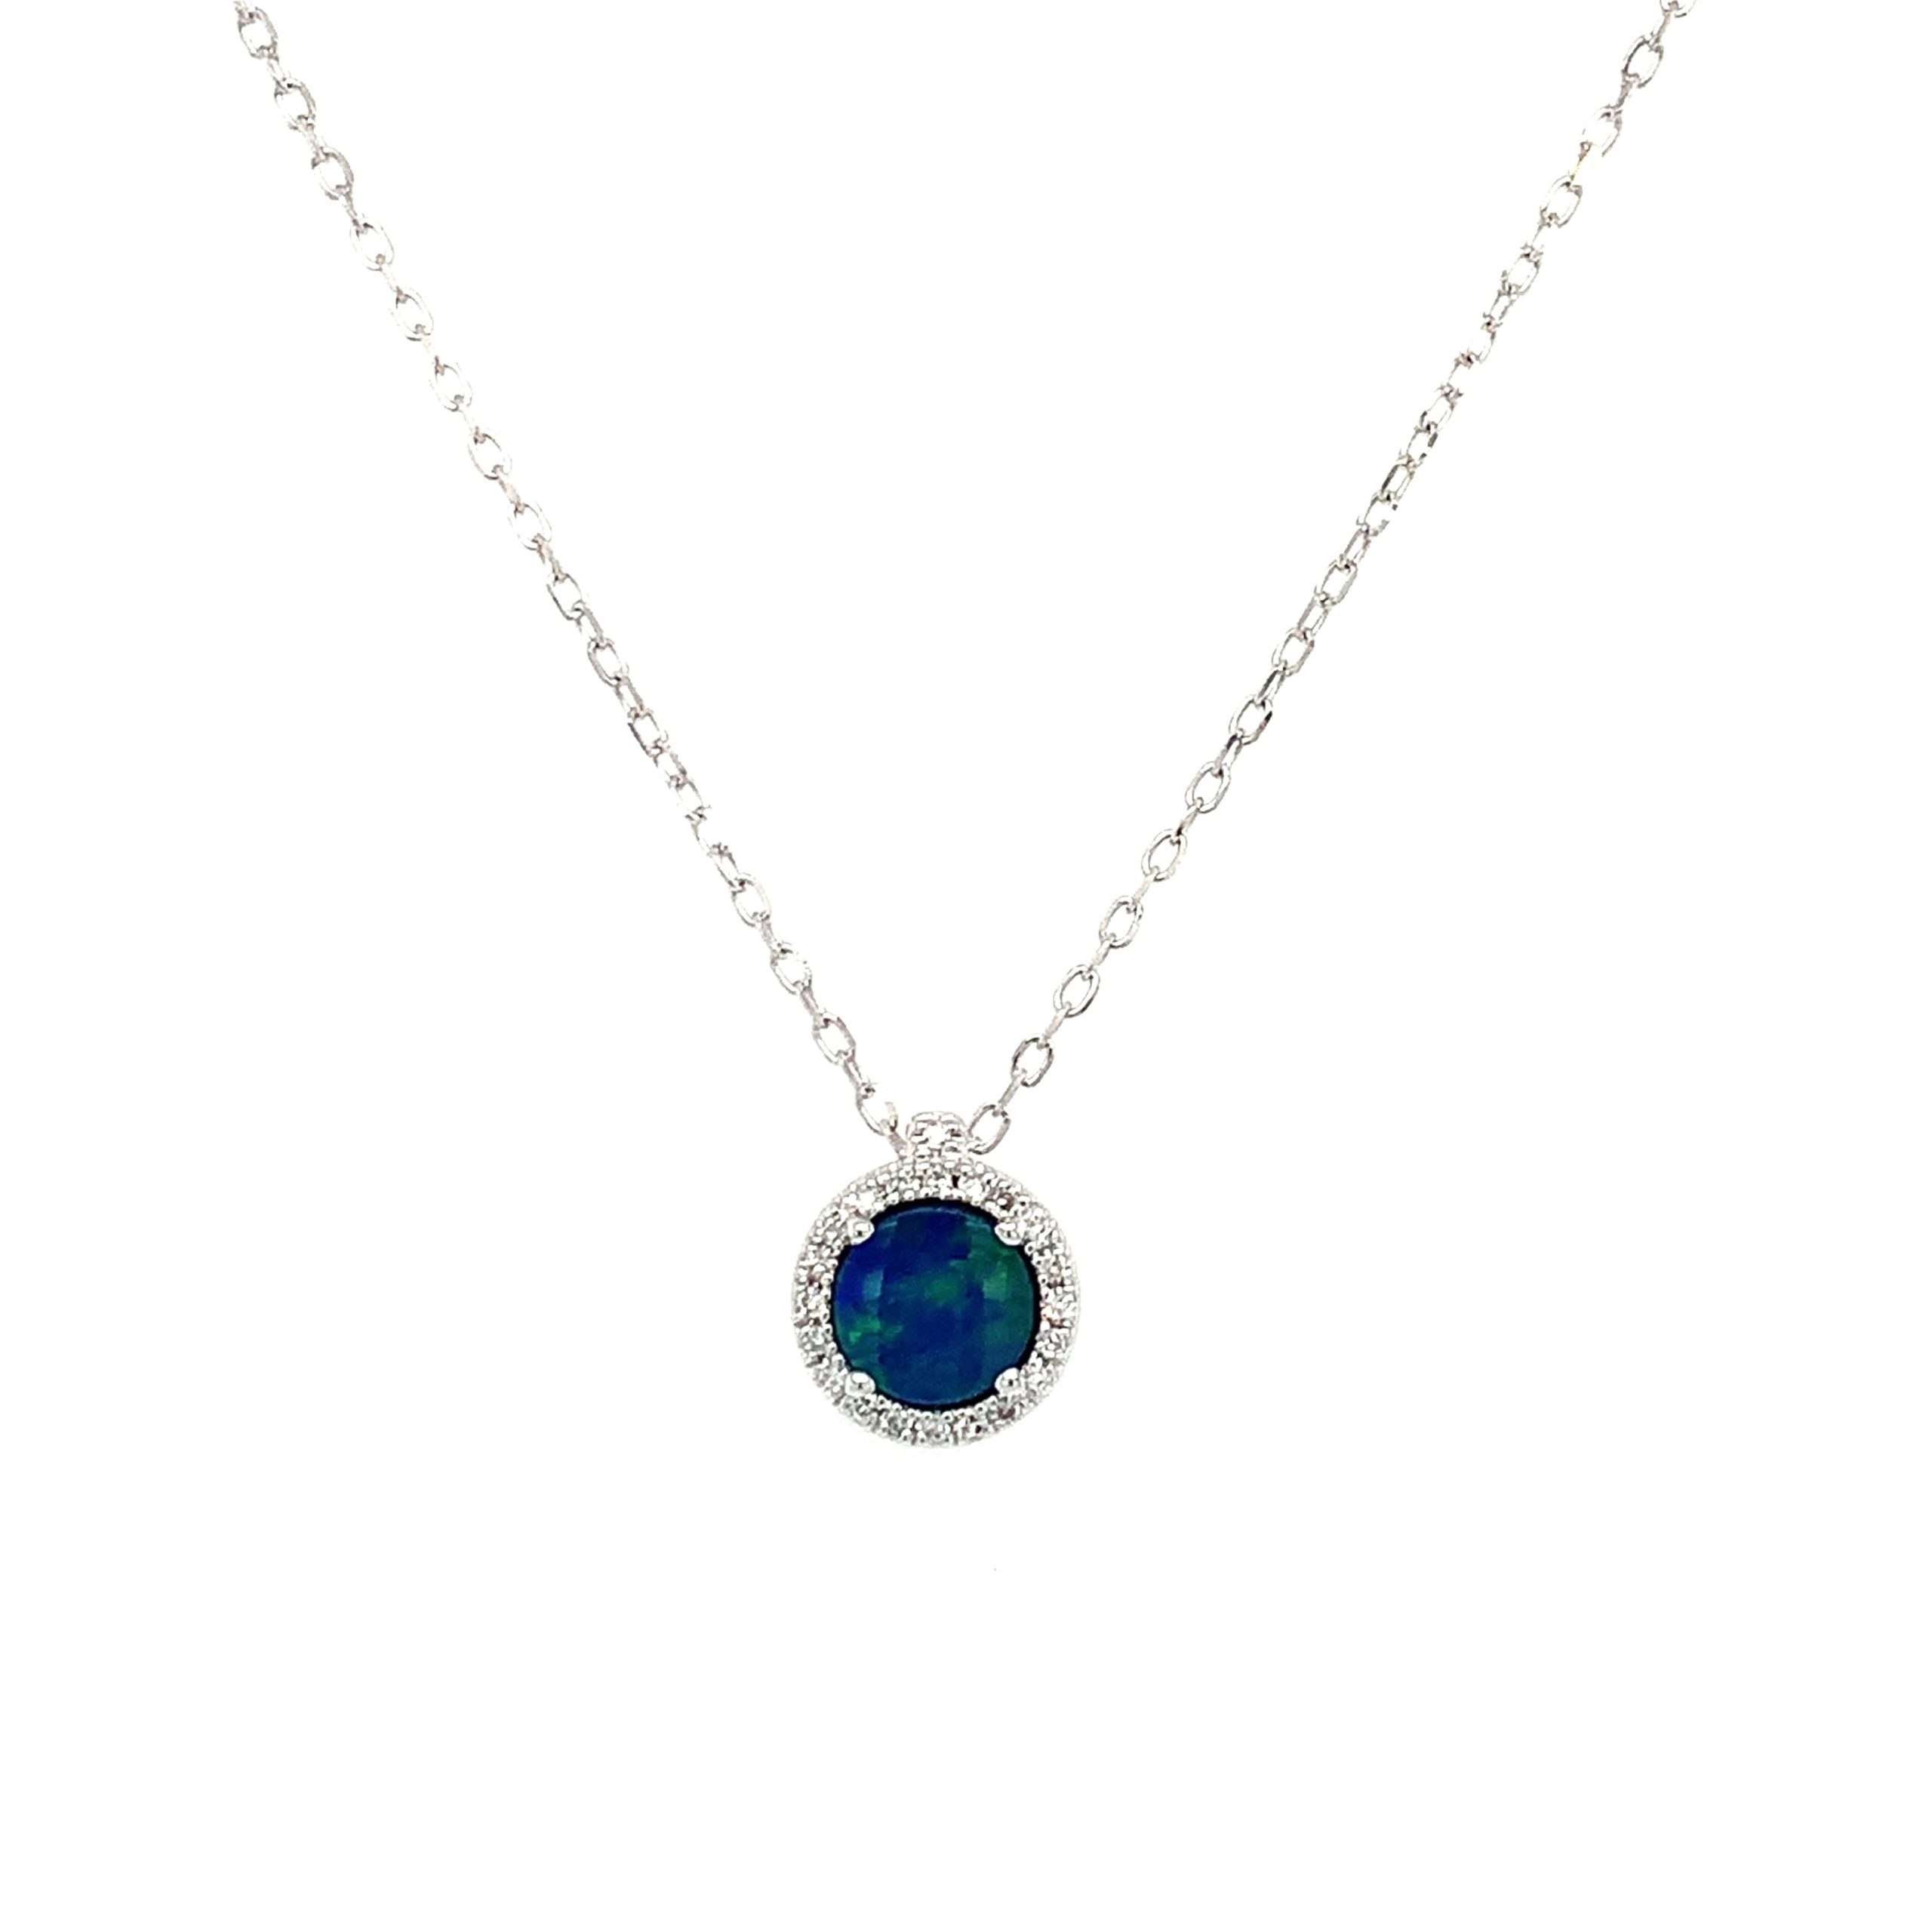 White Gold Opal Pendant Necklace